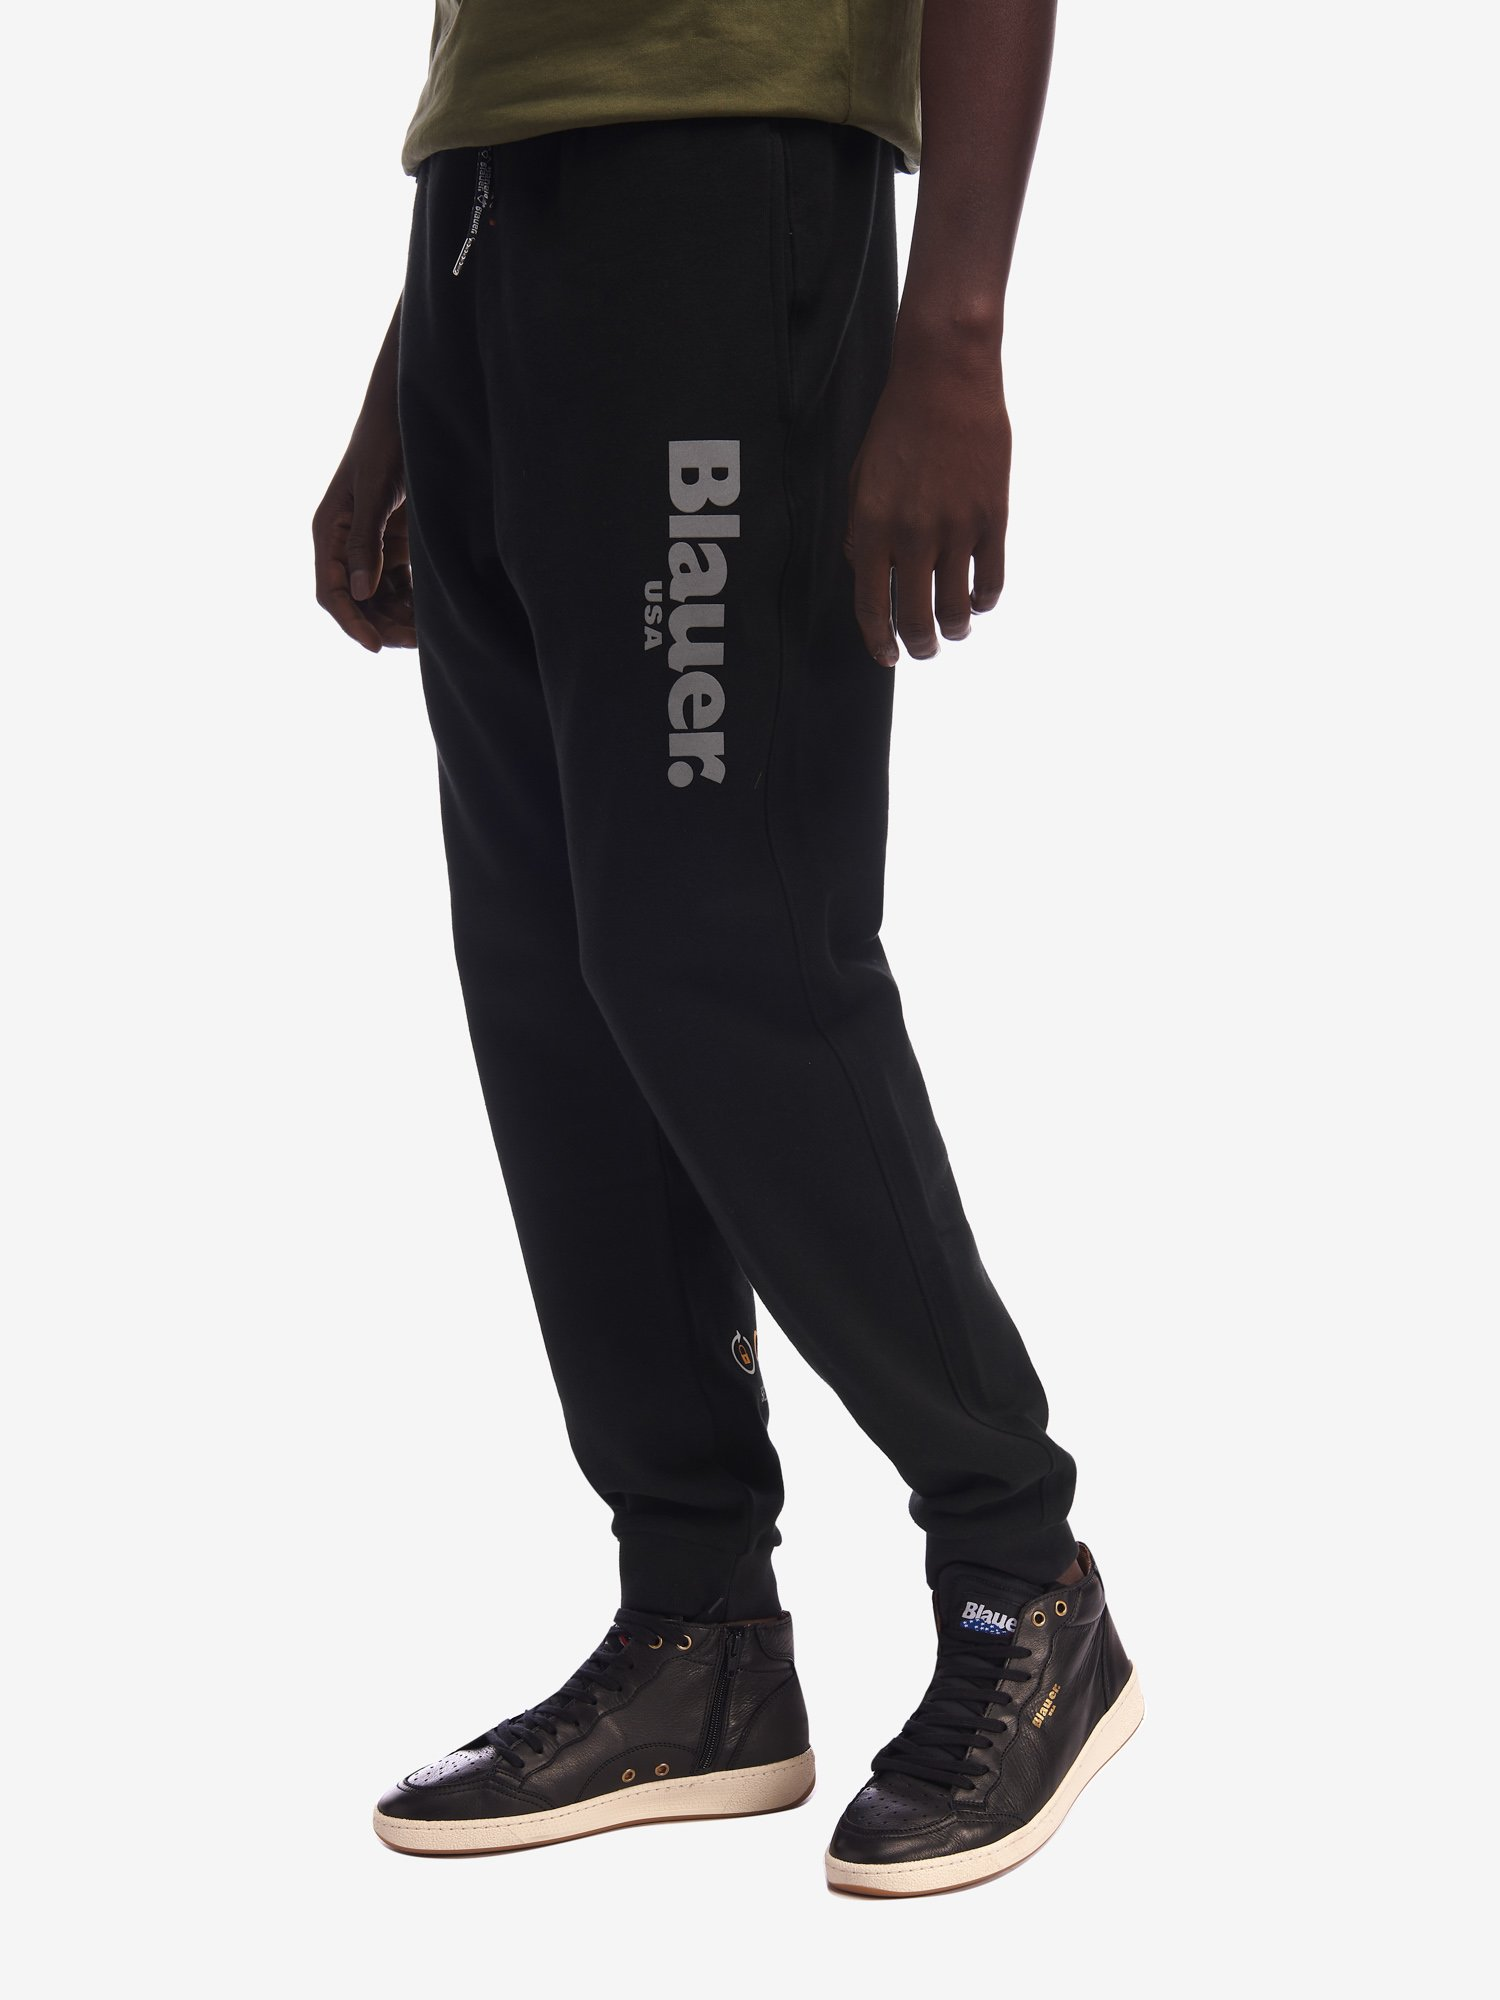 SWEATPANTS WITH CAMOUFLAGE POCKET - Blauer